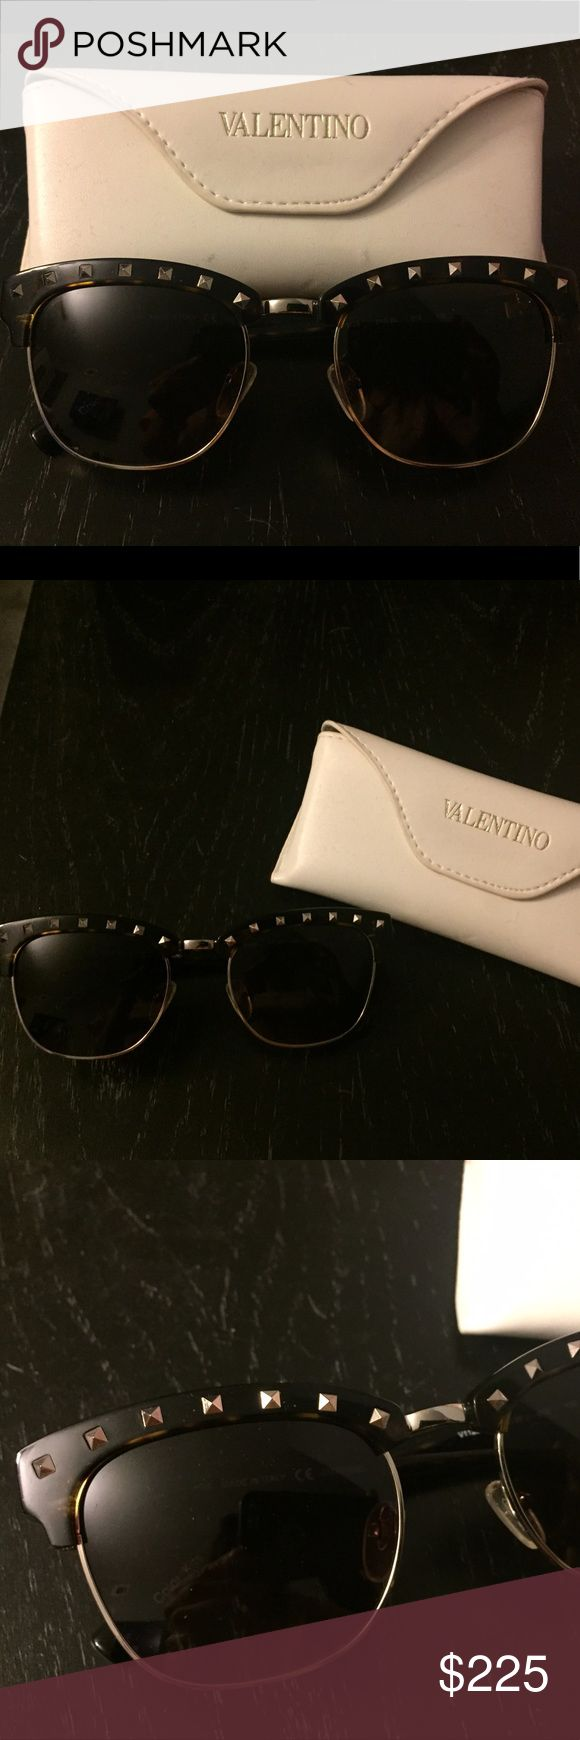 "😎SALE! Authentic Valentino rockstud sunglasses😎 Gorgeous authentic Valentino rock stud sunglasses. Tortoise color, with gold rock studs across the top and ""V"" logo on the temples. Comes with leather Valentino case. Valentino Accessories Sunglasses"